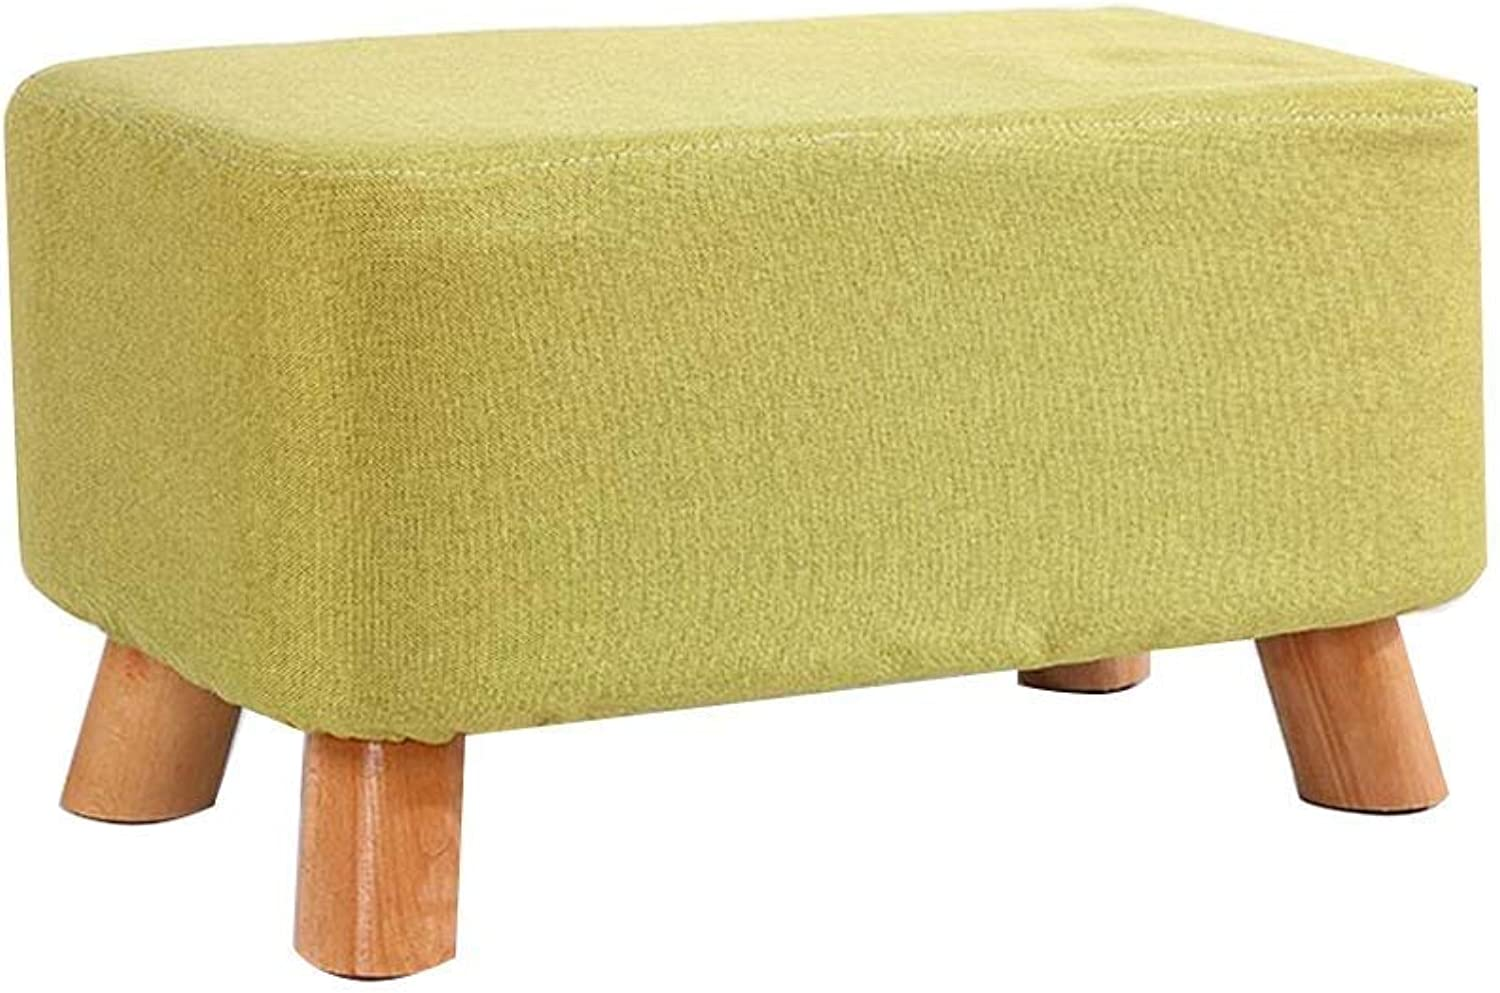 Change shoes Bench Small Stool Cloth Solid Wood Living Room Sofa Stool Multiple Sizes GMING (color   Green 50cm)